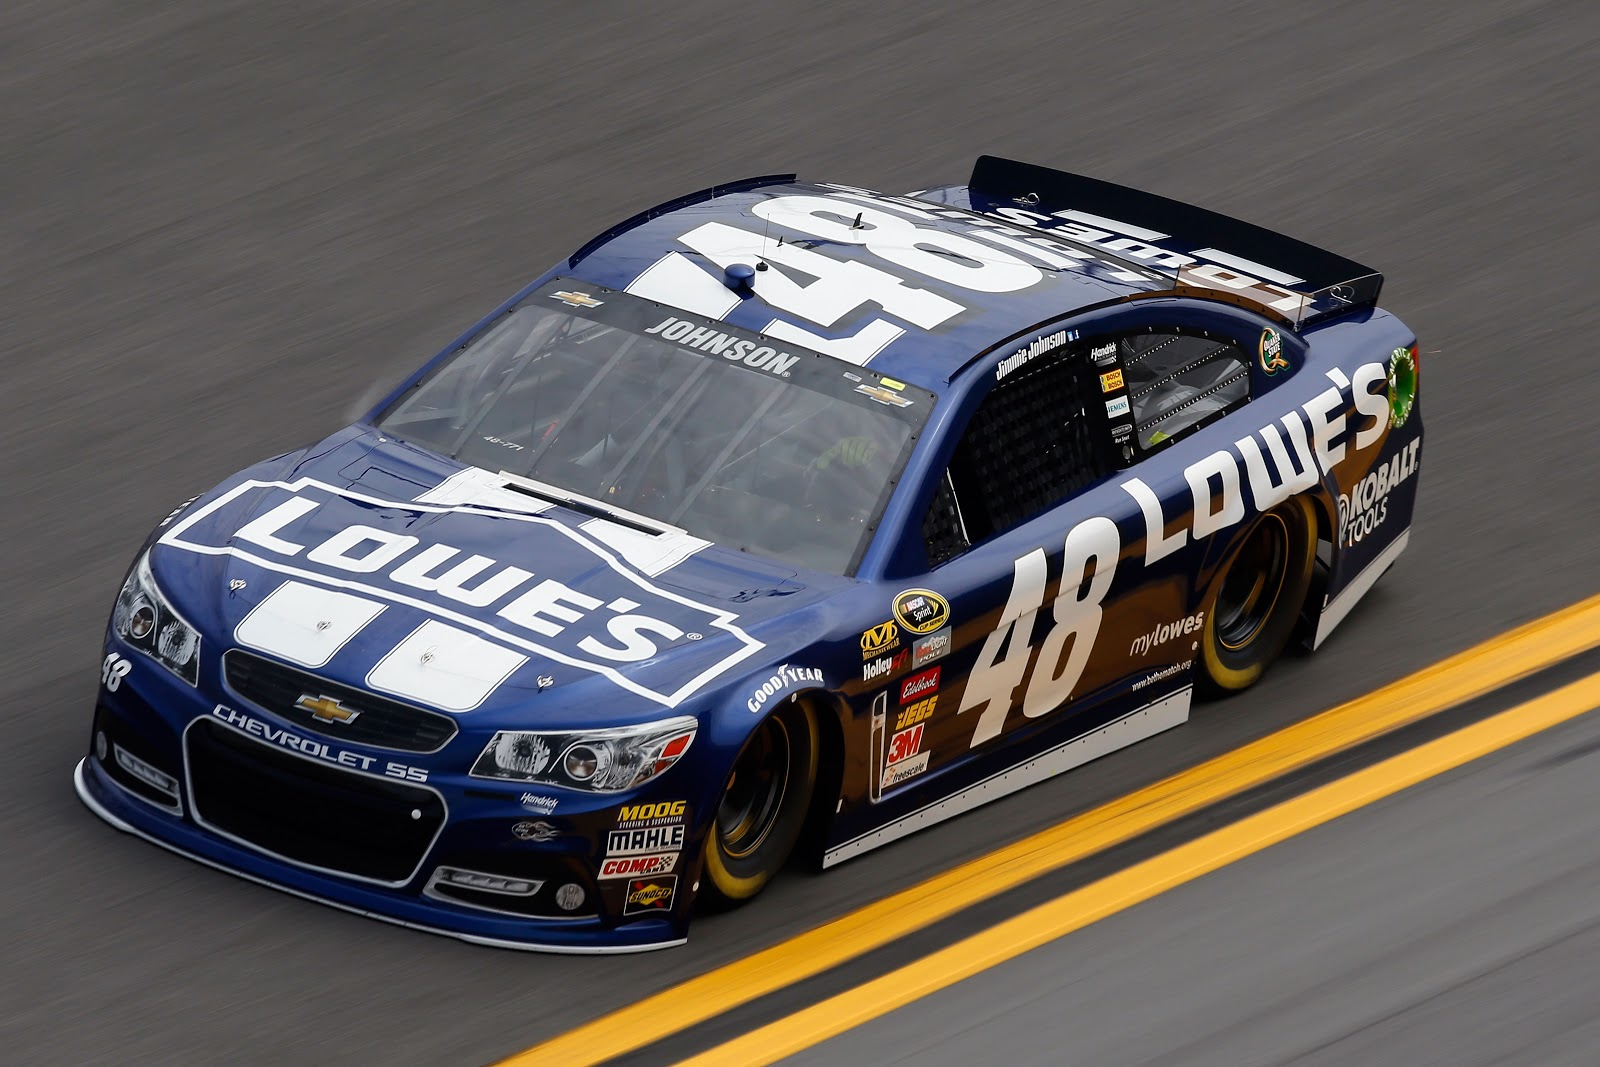 Congratulations to the 48 team on your Daytona 500 crown 1600x1067